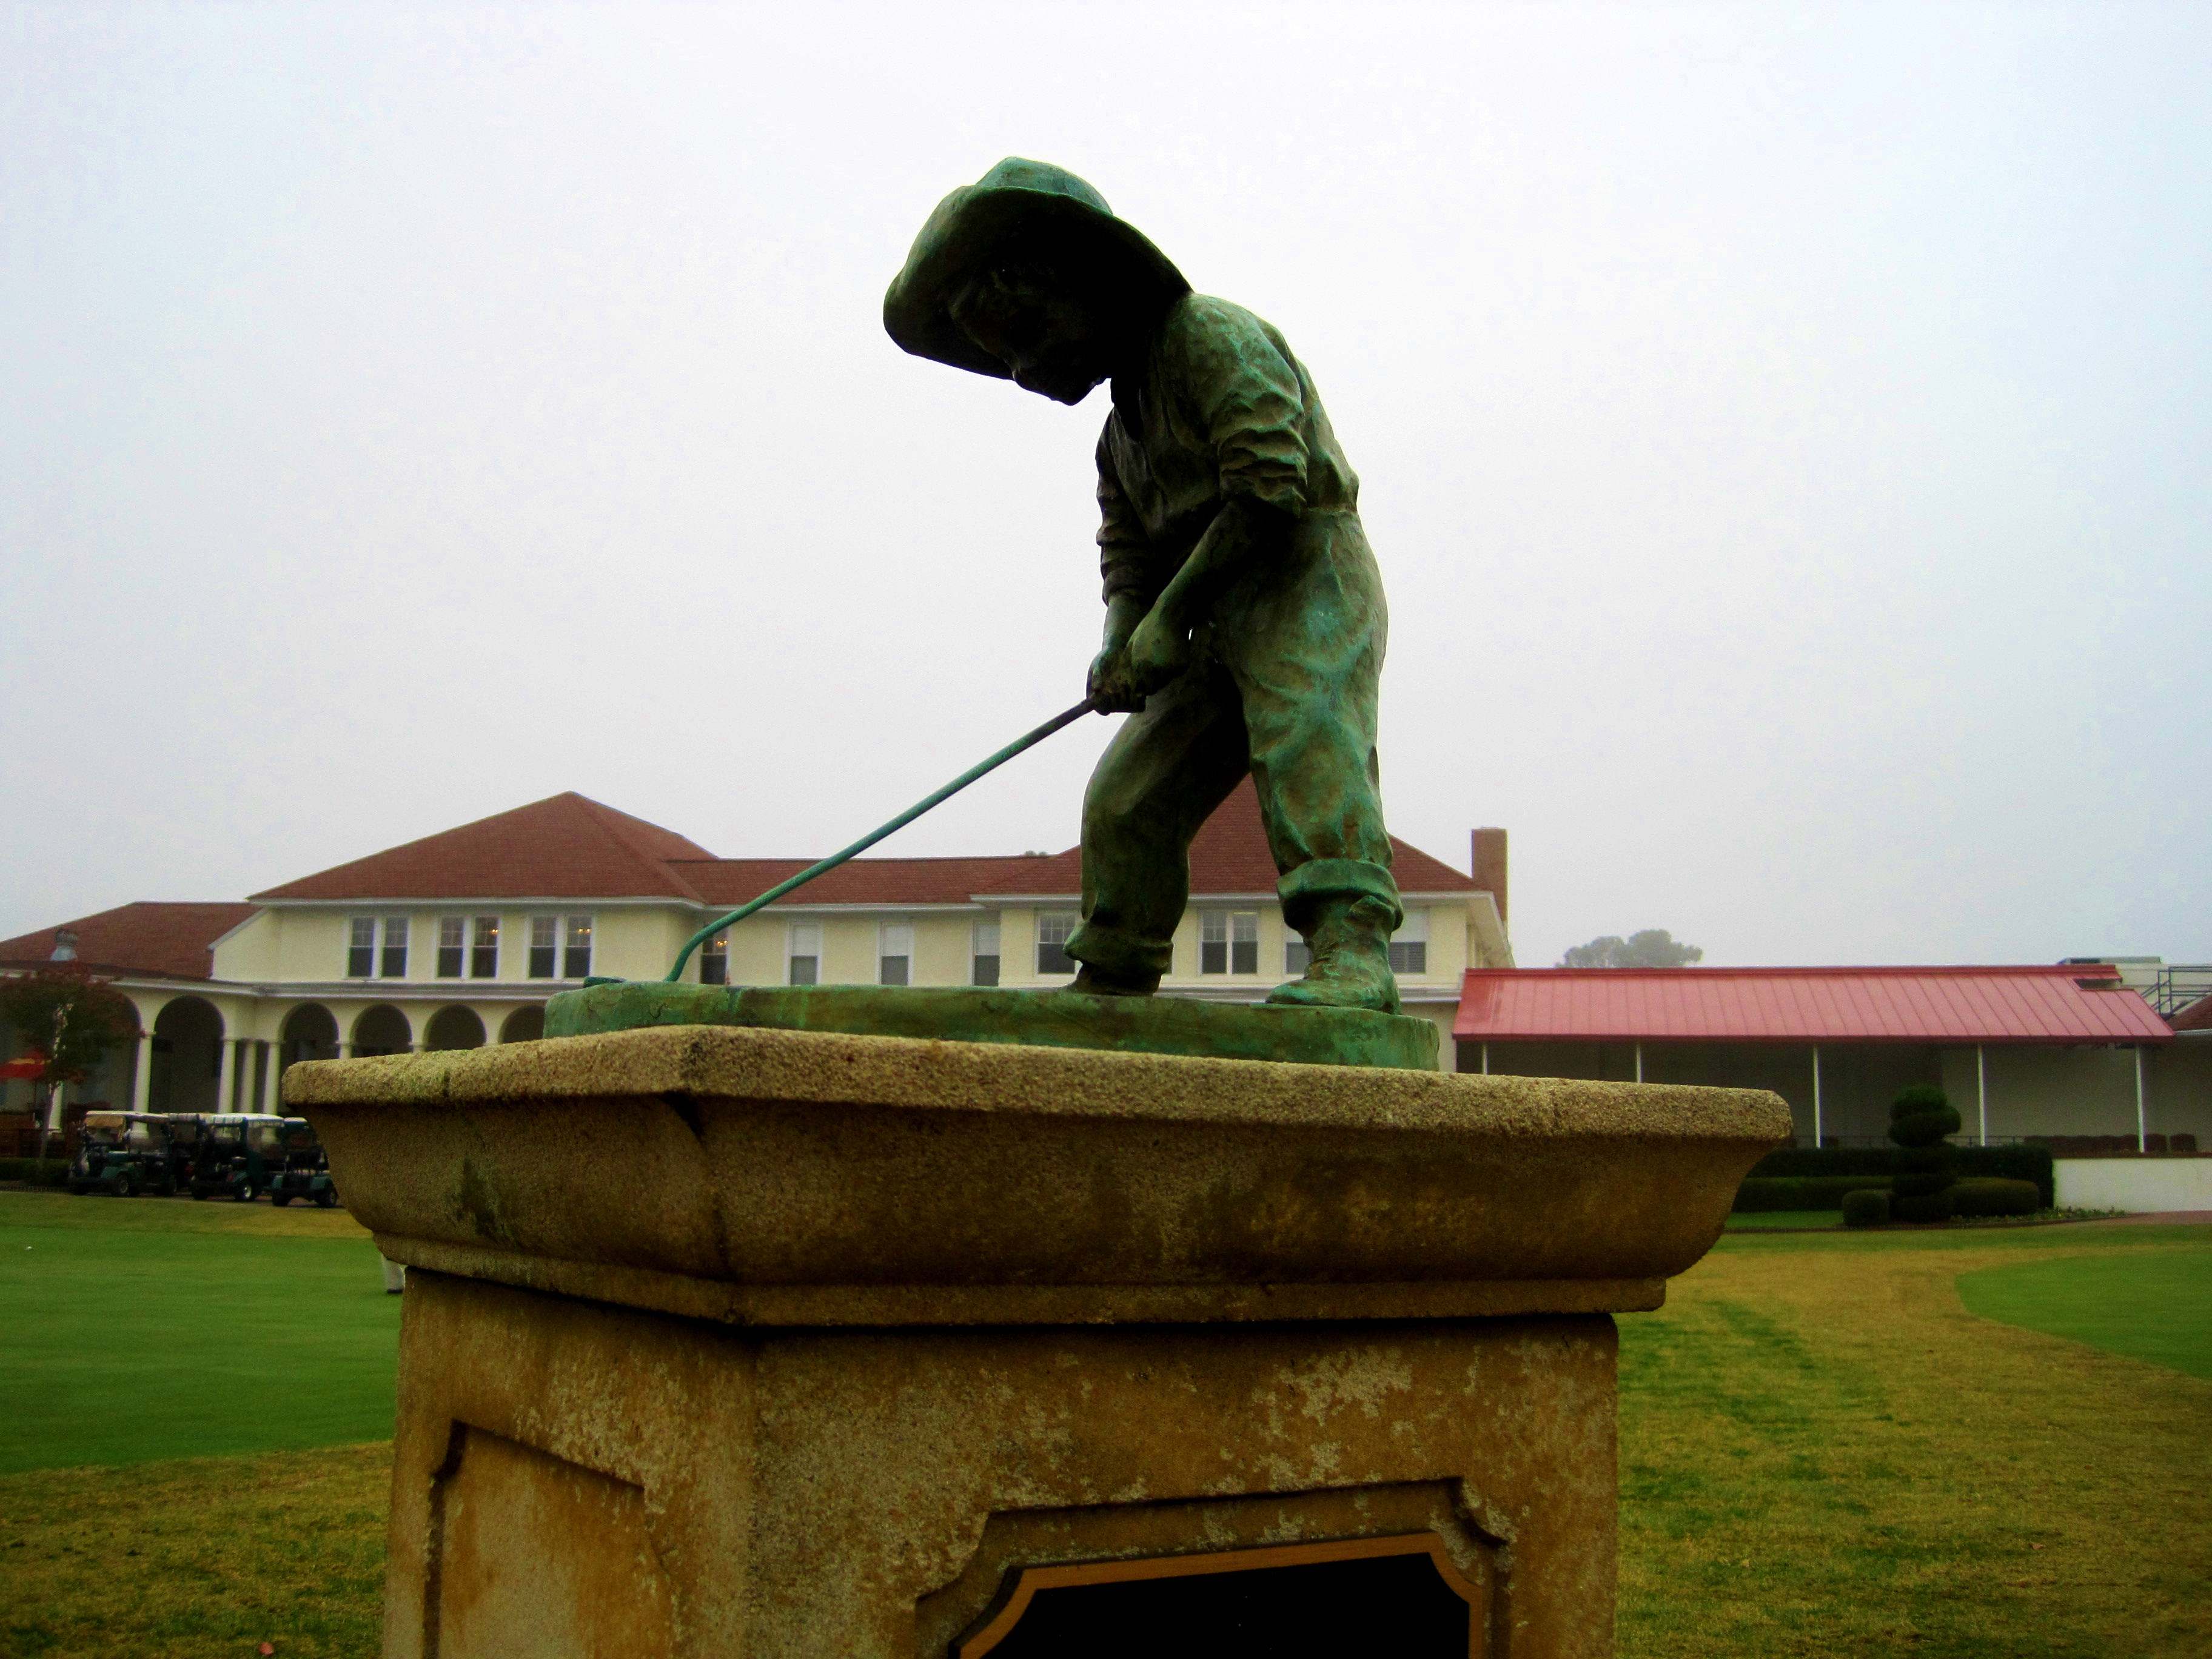 Pinehurst Putter Boy in fog.